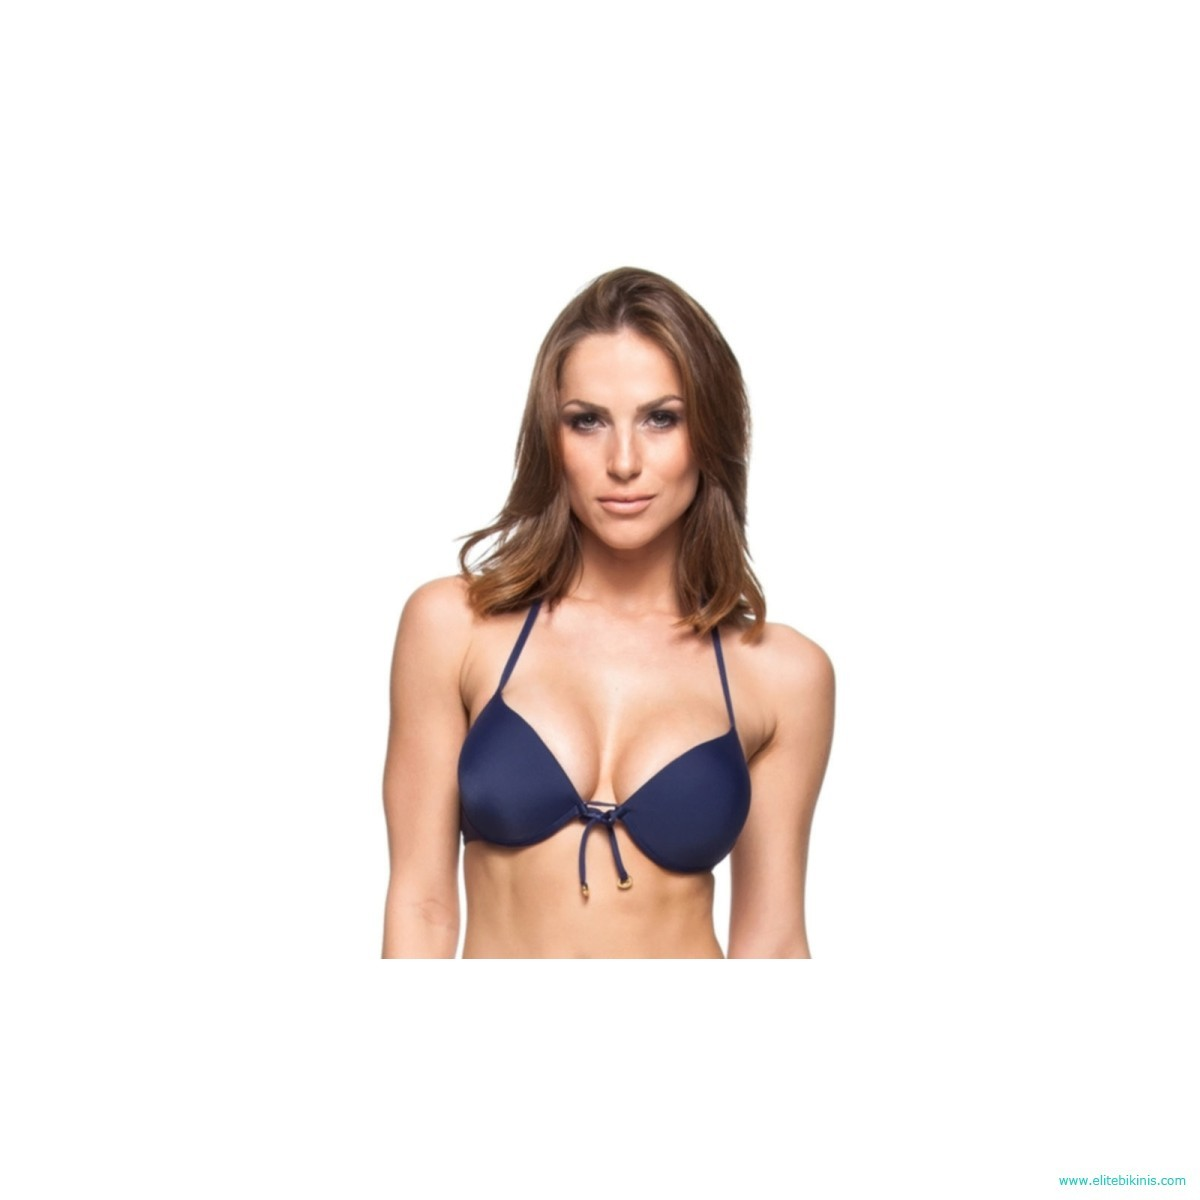 88d4f10ca4 La Playa bikini top in navy blue color from 2018 collection it's made in  Brazil. This Soutien Sol Das Antilhas top has a push-up with underwire  style, ...